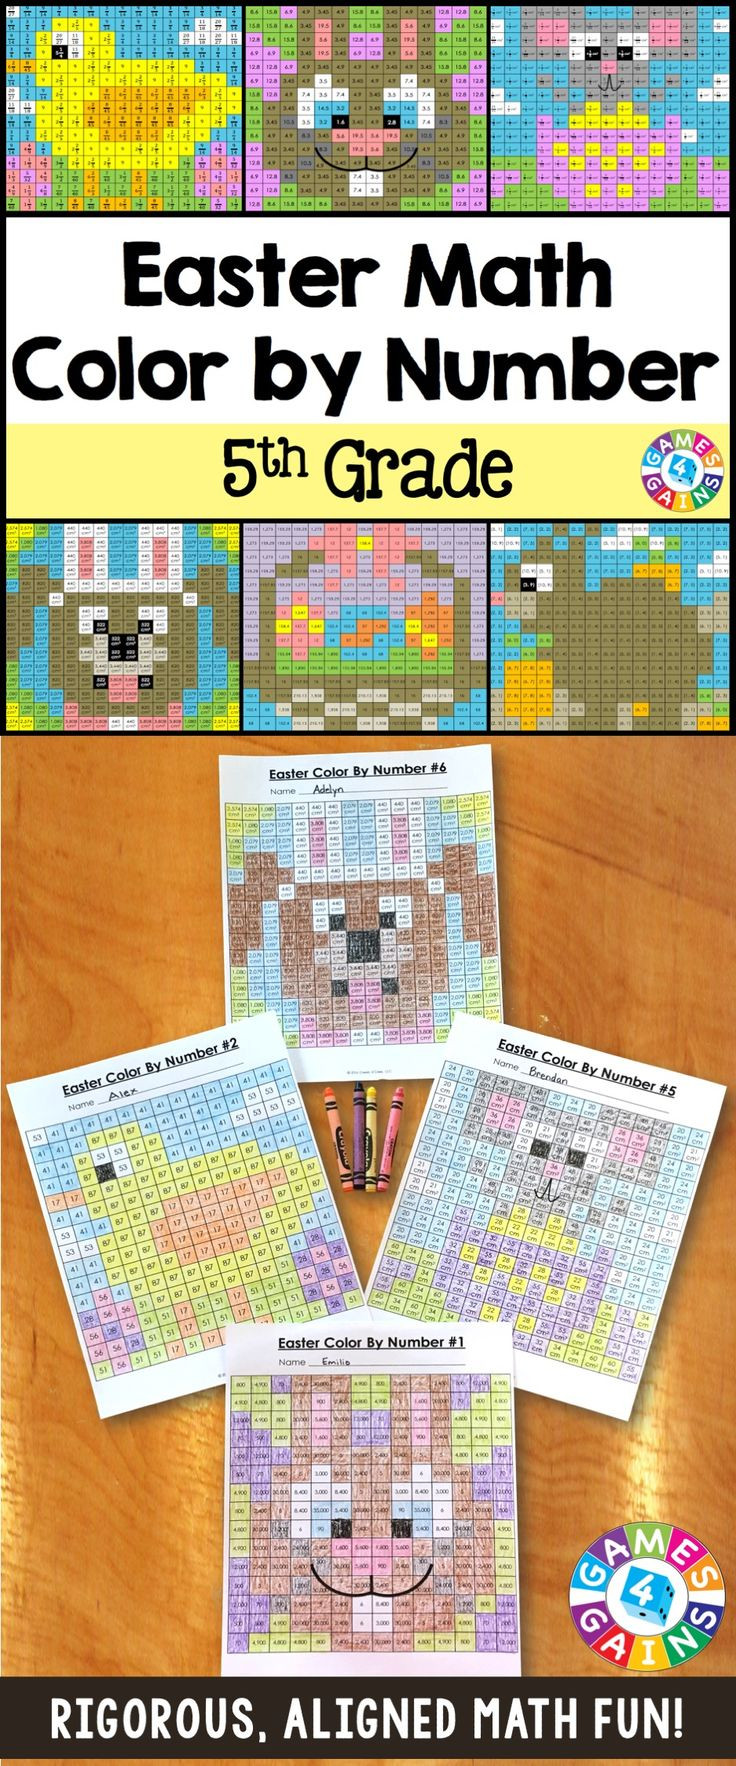 5Th Grade Easter Party Ideas  1000 images about Games 4 Gains Products on Pinterest